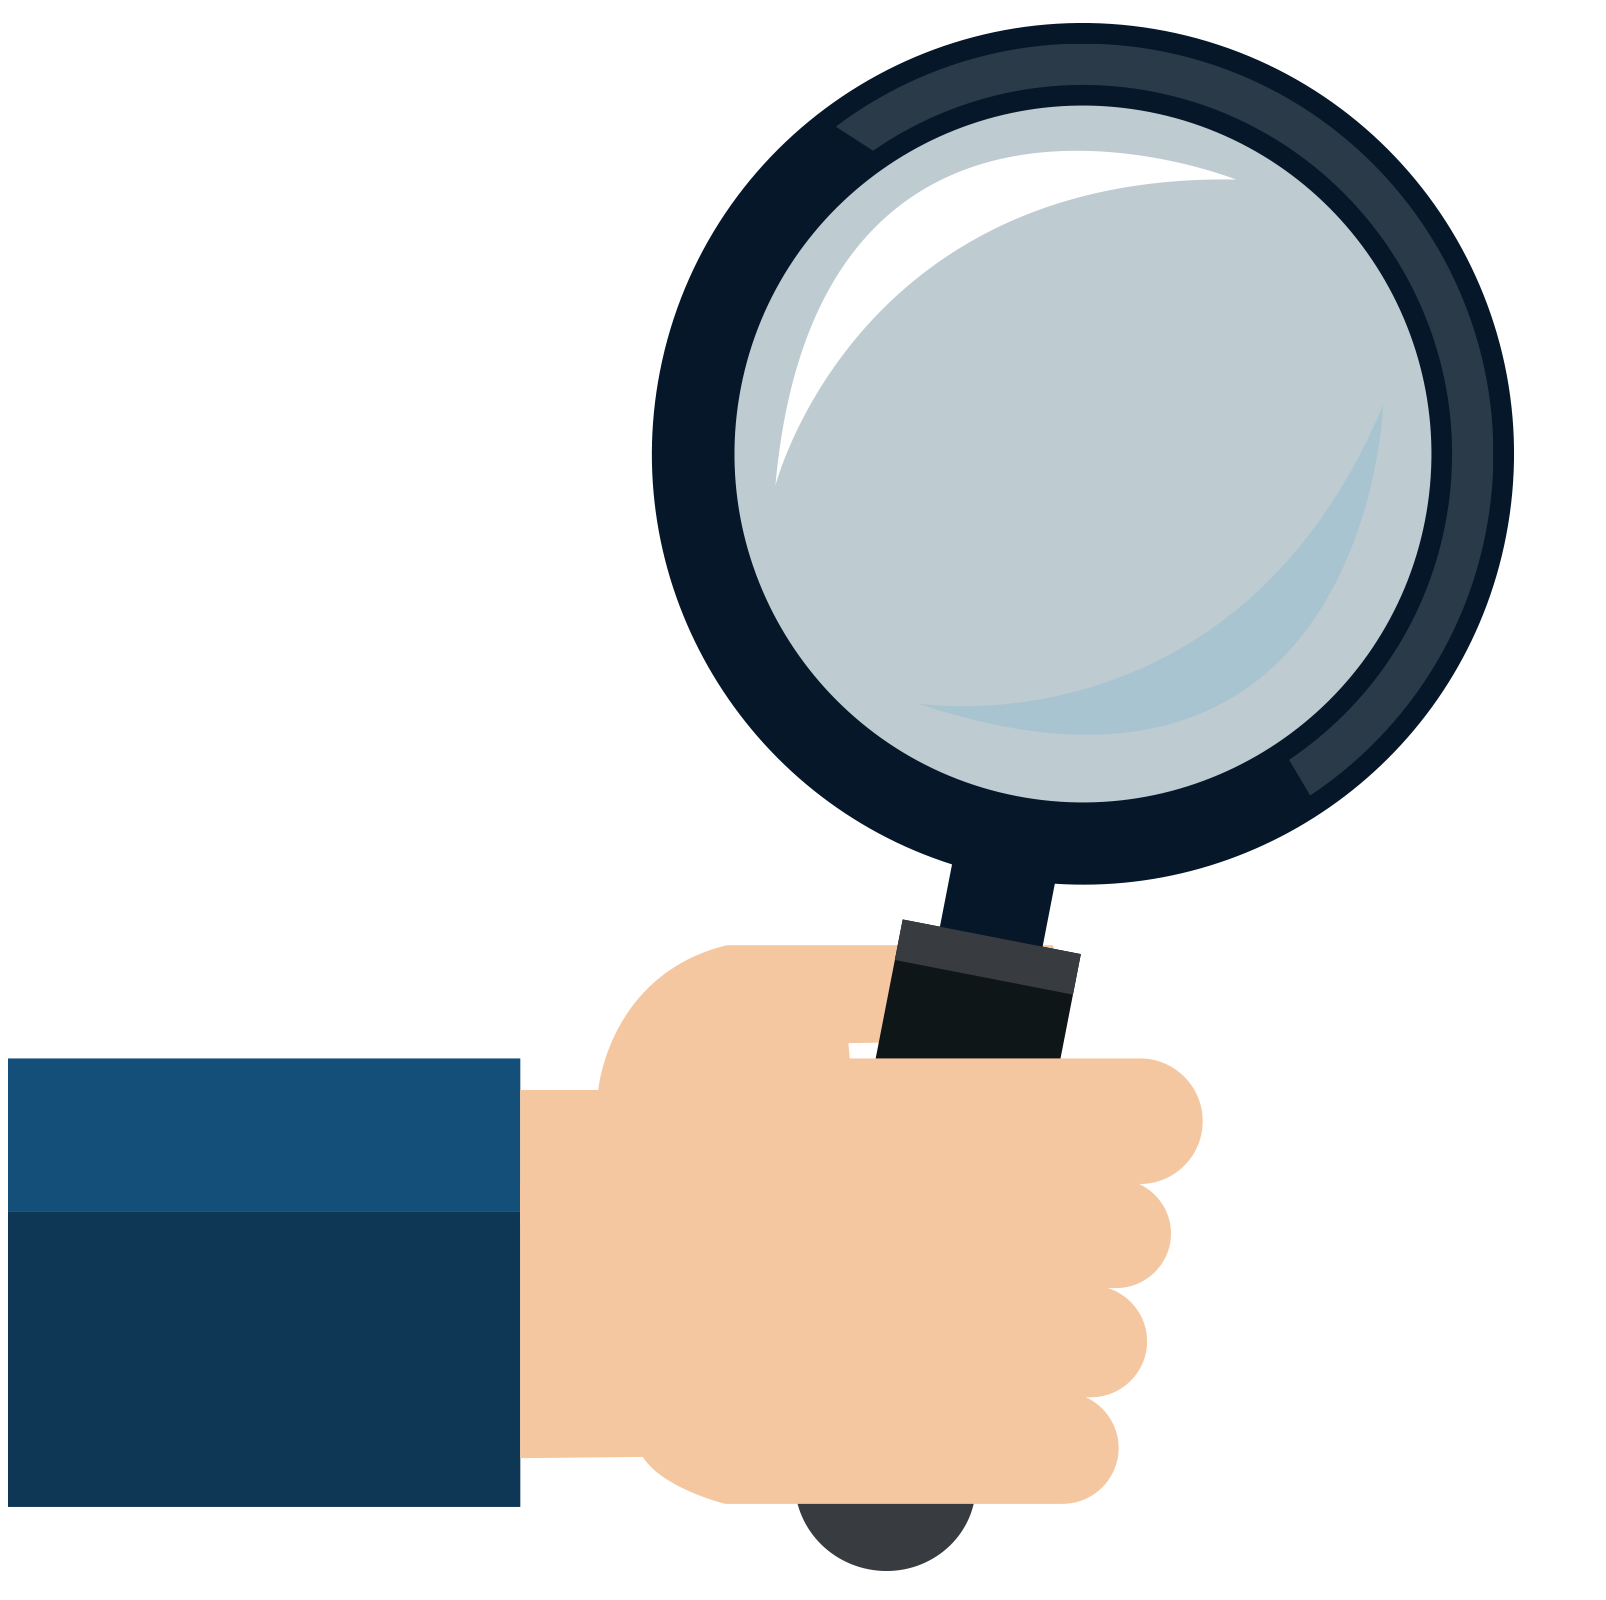 Clipart computer magnifying glass. Mouse hand icon flattened